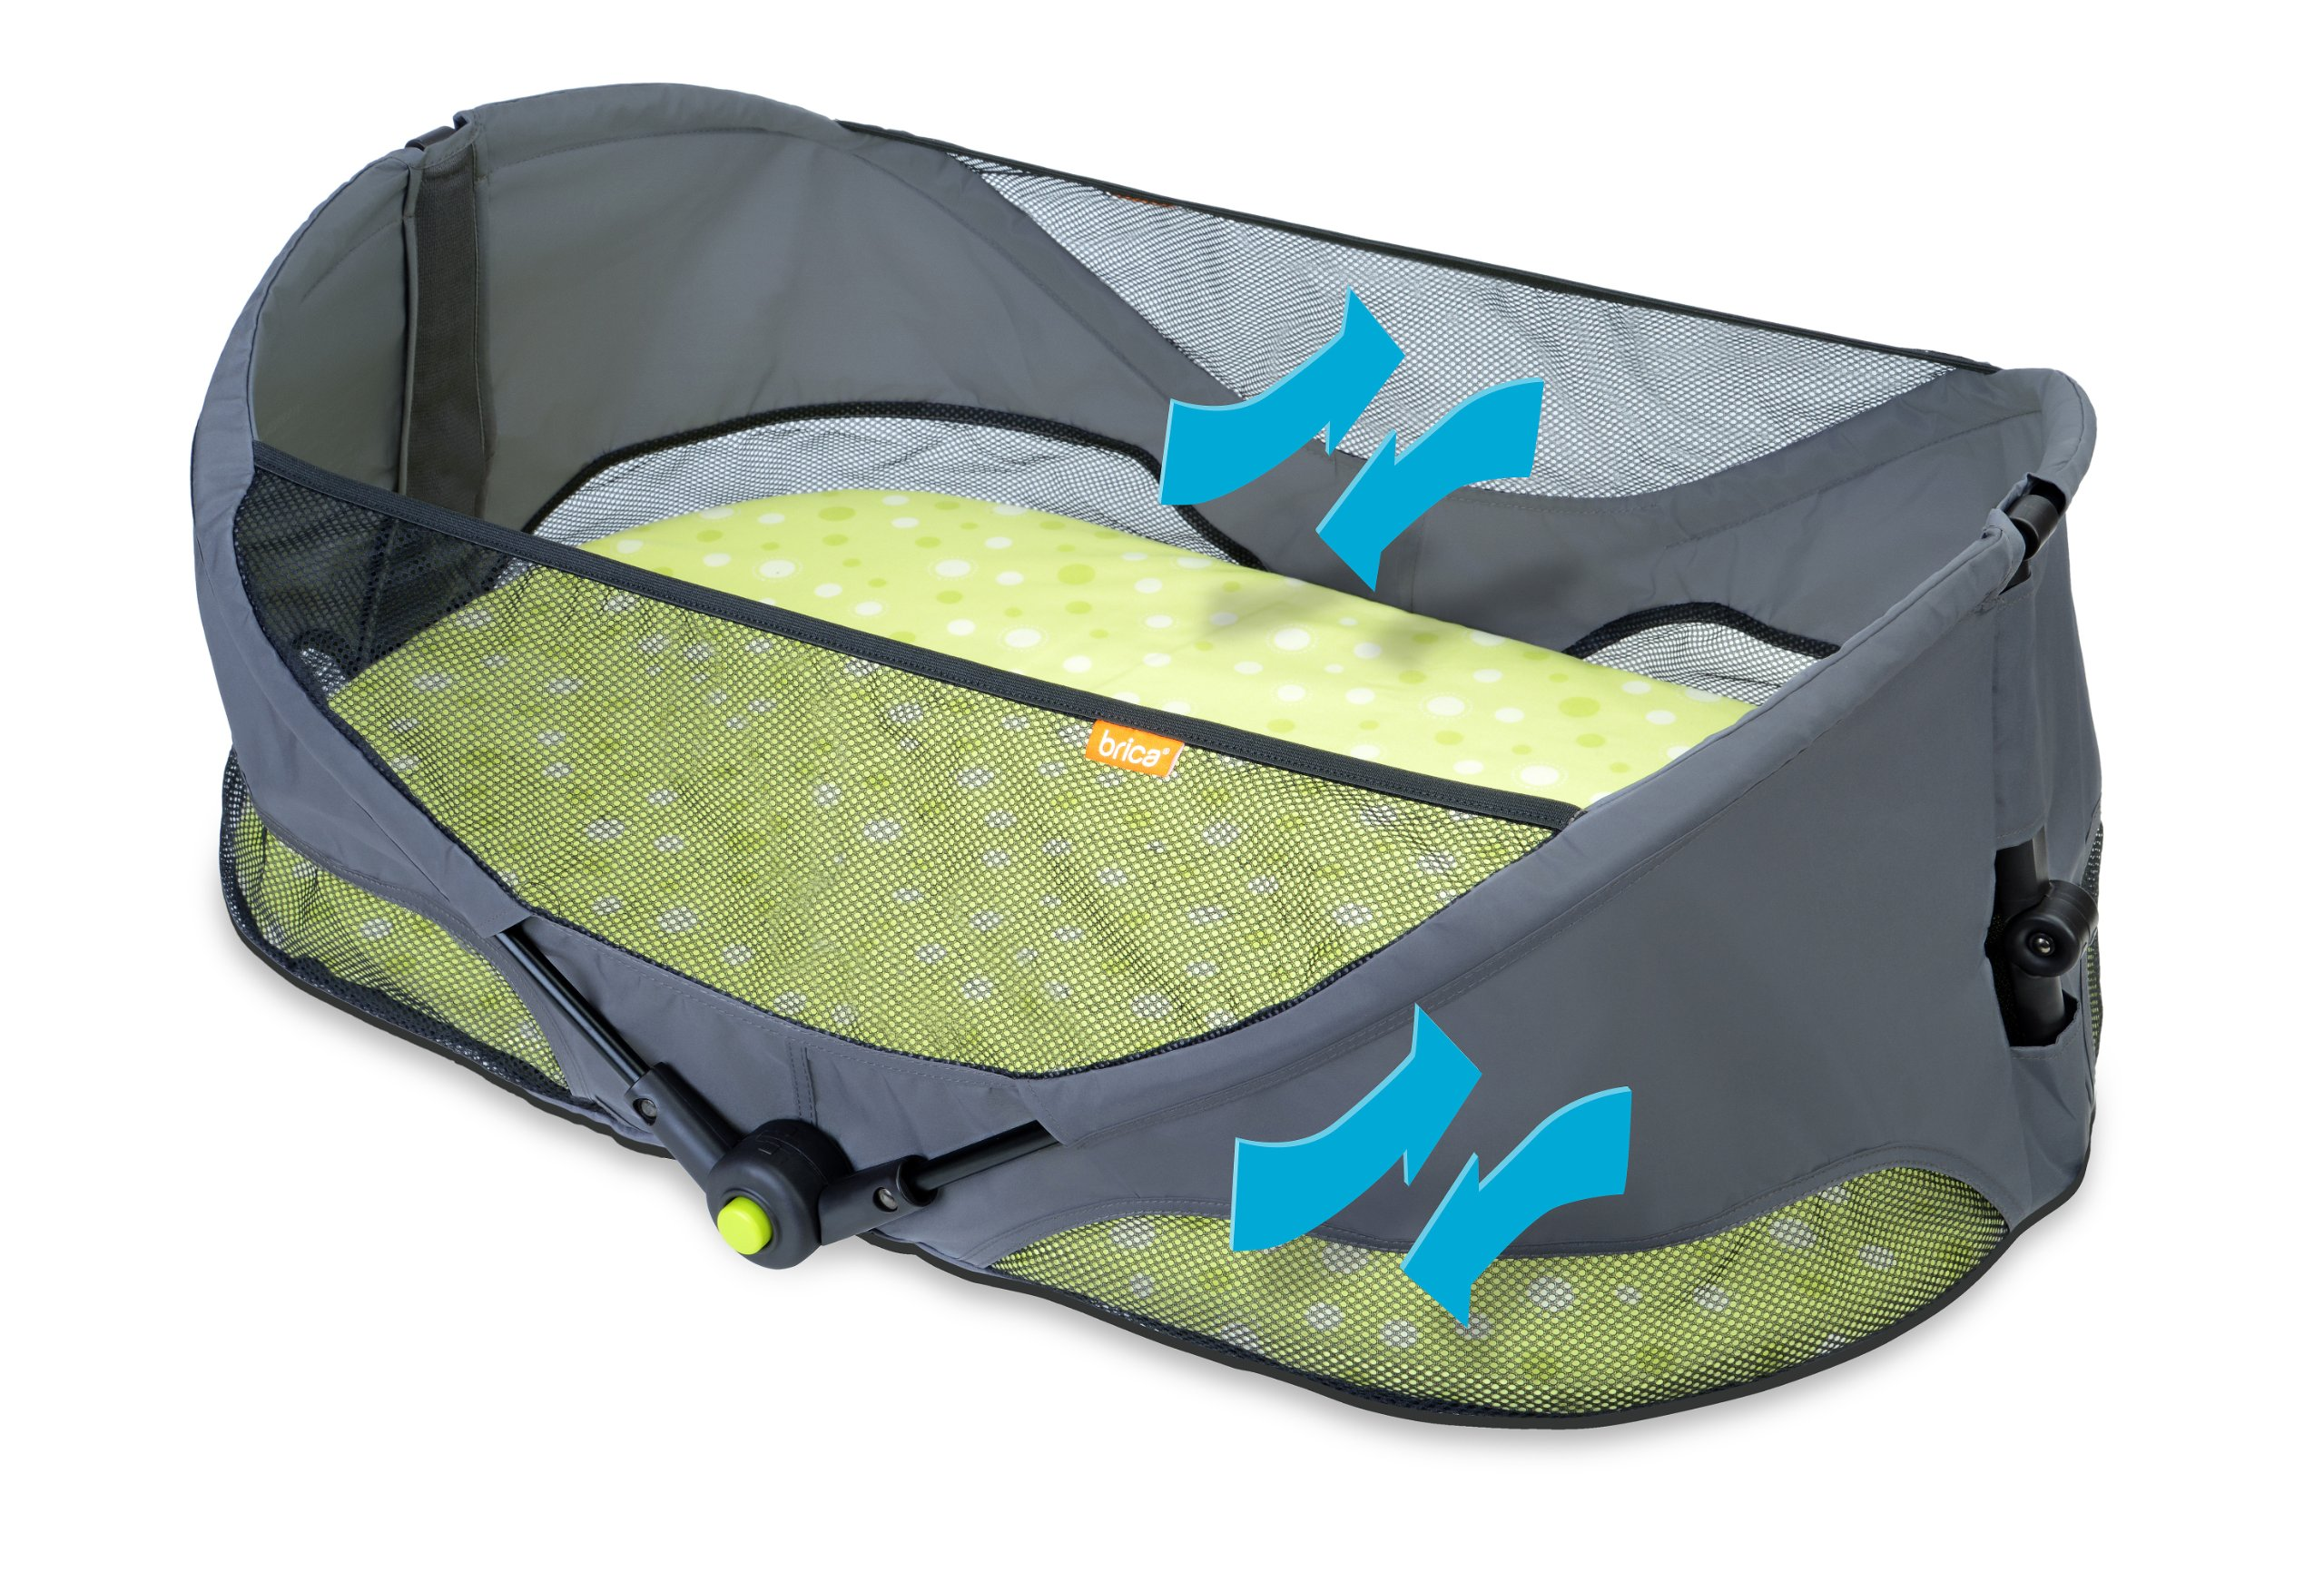 Baby bed for travel - Product Details